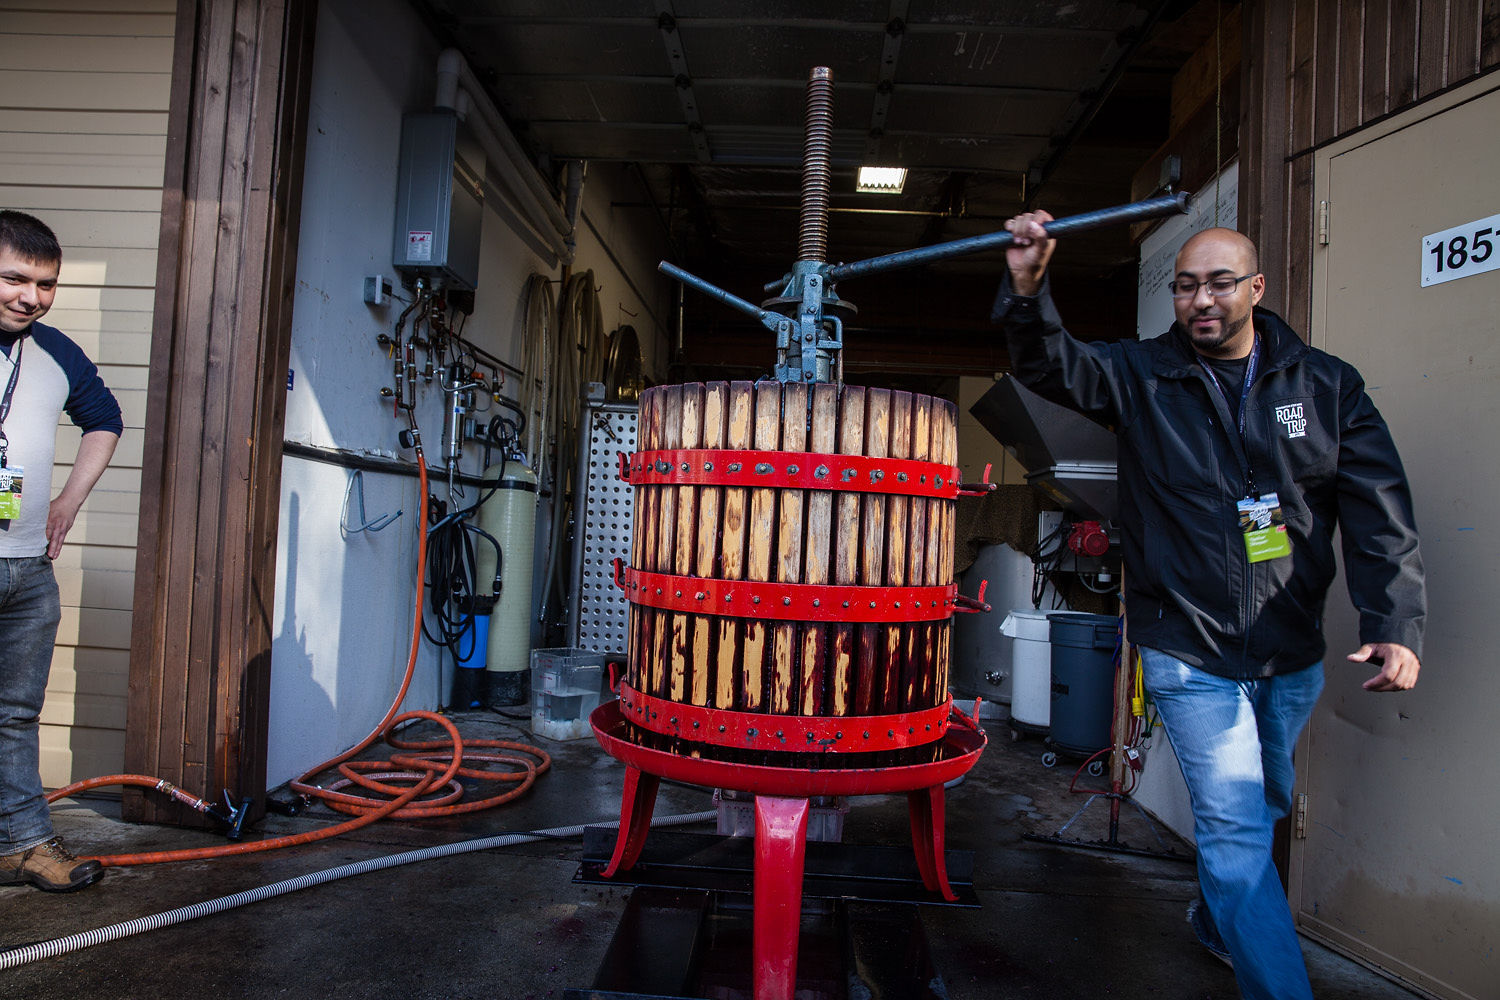 A wine grape press made of wood staves and red metal bands, on a red stand. A man in a black jacket pushes the metal bar at the top, in front of room fading to darkness behind.